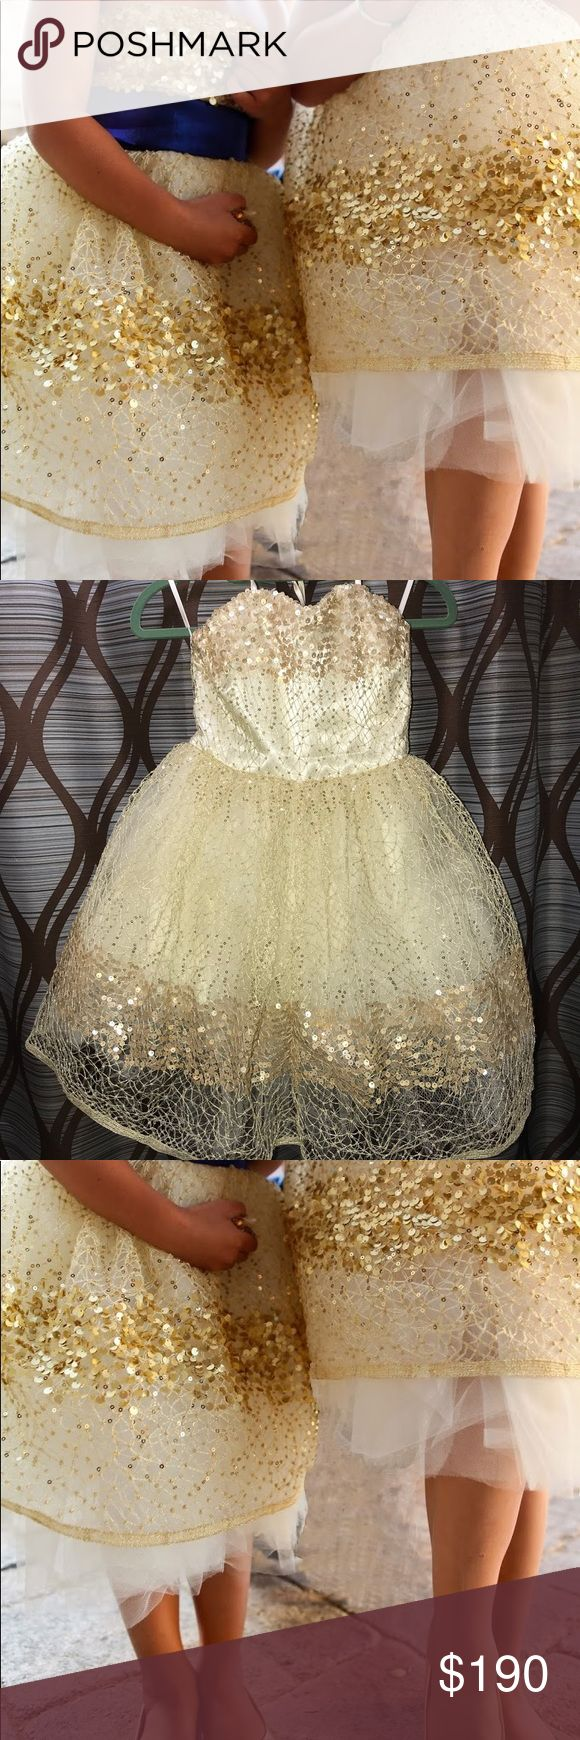 """DOLORIS PETUNIA GOLD CONSTELLATION DRESS 0 2 Jaw dropping gorgeous dress by Dolores Petunia Etsy. I'm 5'1"""" 107 lbs. Worn once for 2 hours. Fits 26"""" or 27"""" waist, 34B bra Sash not included. The dress is gold & white. Pair with any color sash for different events! Perfect for petite woman or a junior bridesmaid / pageant. Worn by Vivienne Pitt, Heidi Klum's daughter + Jessica Alba's daughter! Gold sequins tulle strapless or wear w/ straps. Neckline is straight not sweetheart. Sz 0 / 2 xs…"""